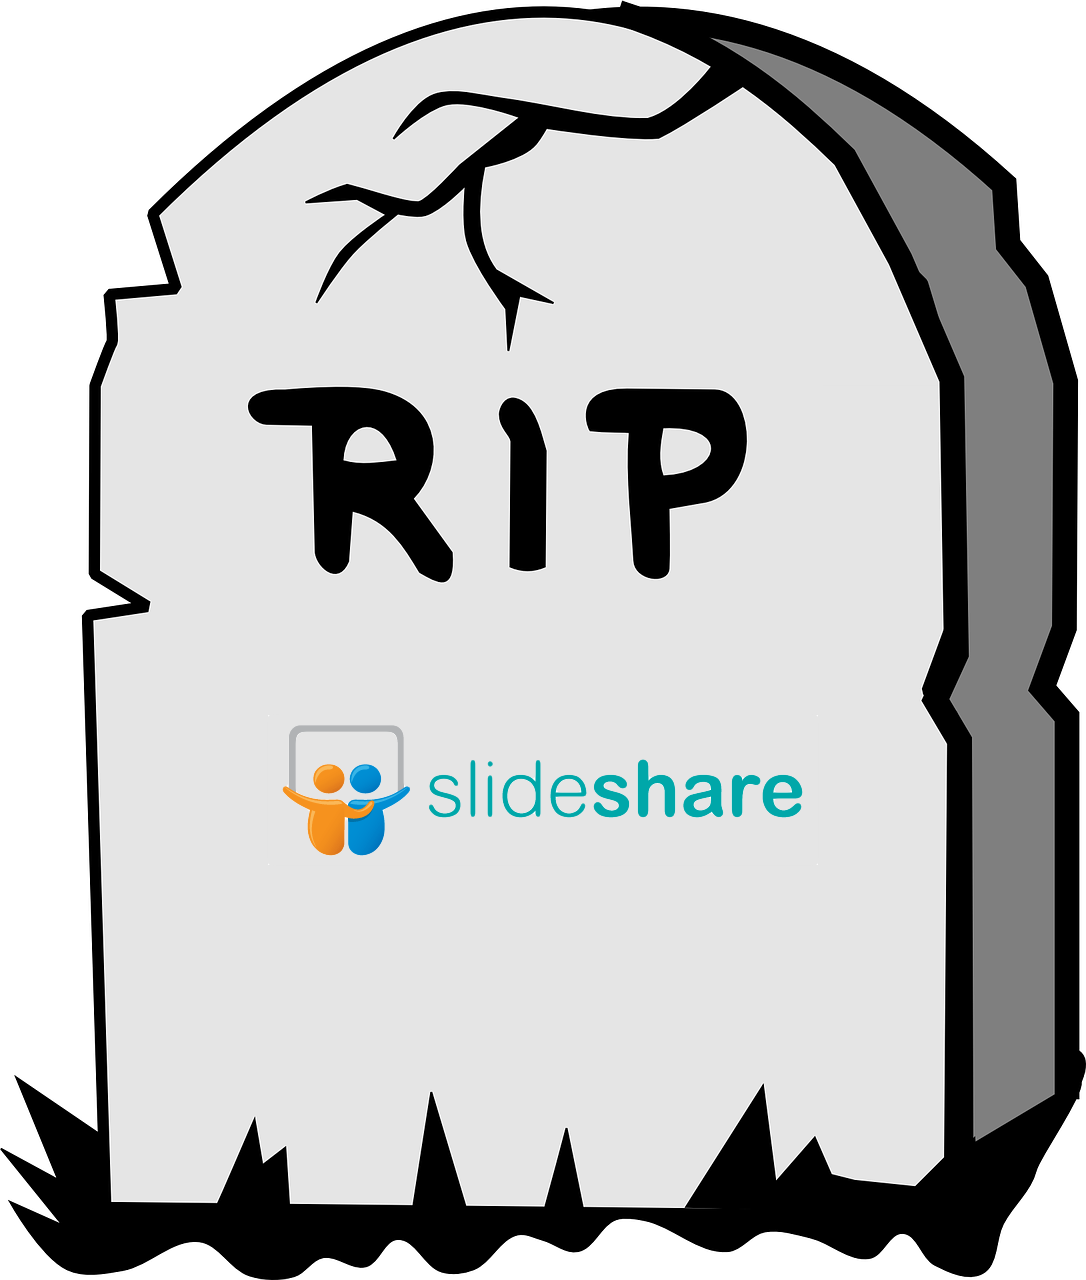 Rip drawing advanced. Does slideshare have a